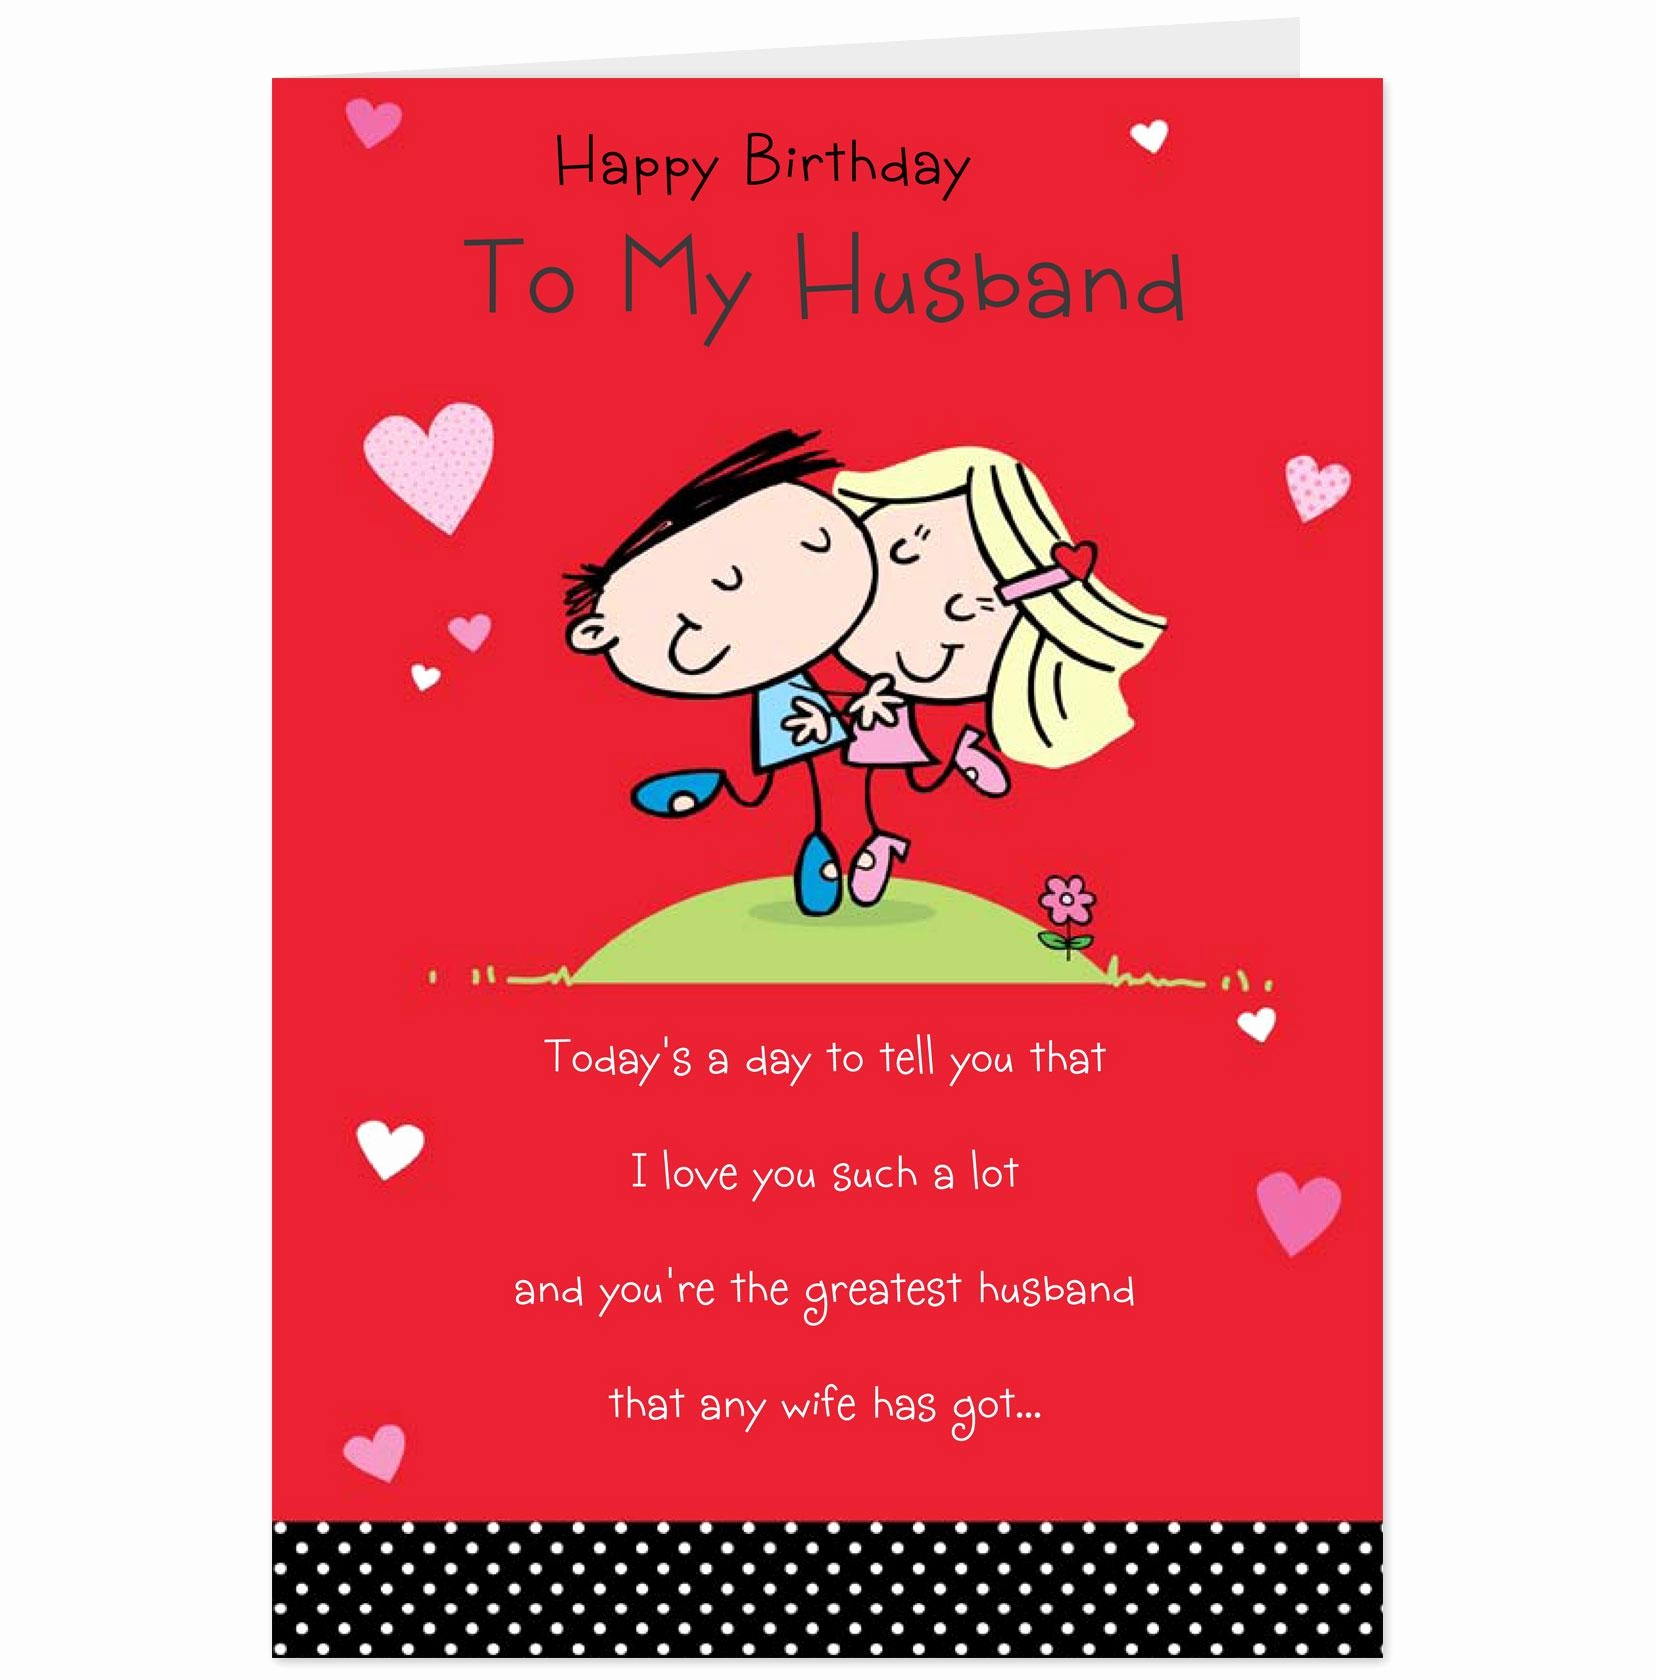 send a birthday wish to a cell phone ; send-a-free-birthday-card-to-cell-phone-new-birthday-invitations-card-romantic-birthday-wishes-to-husband-for-of-send-a-free-birthday-card-to-cell-phone